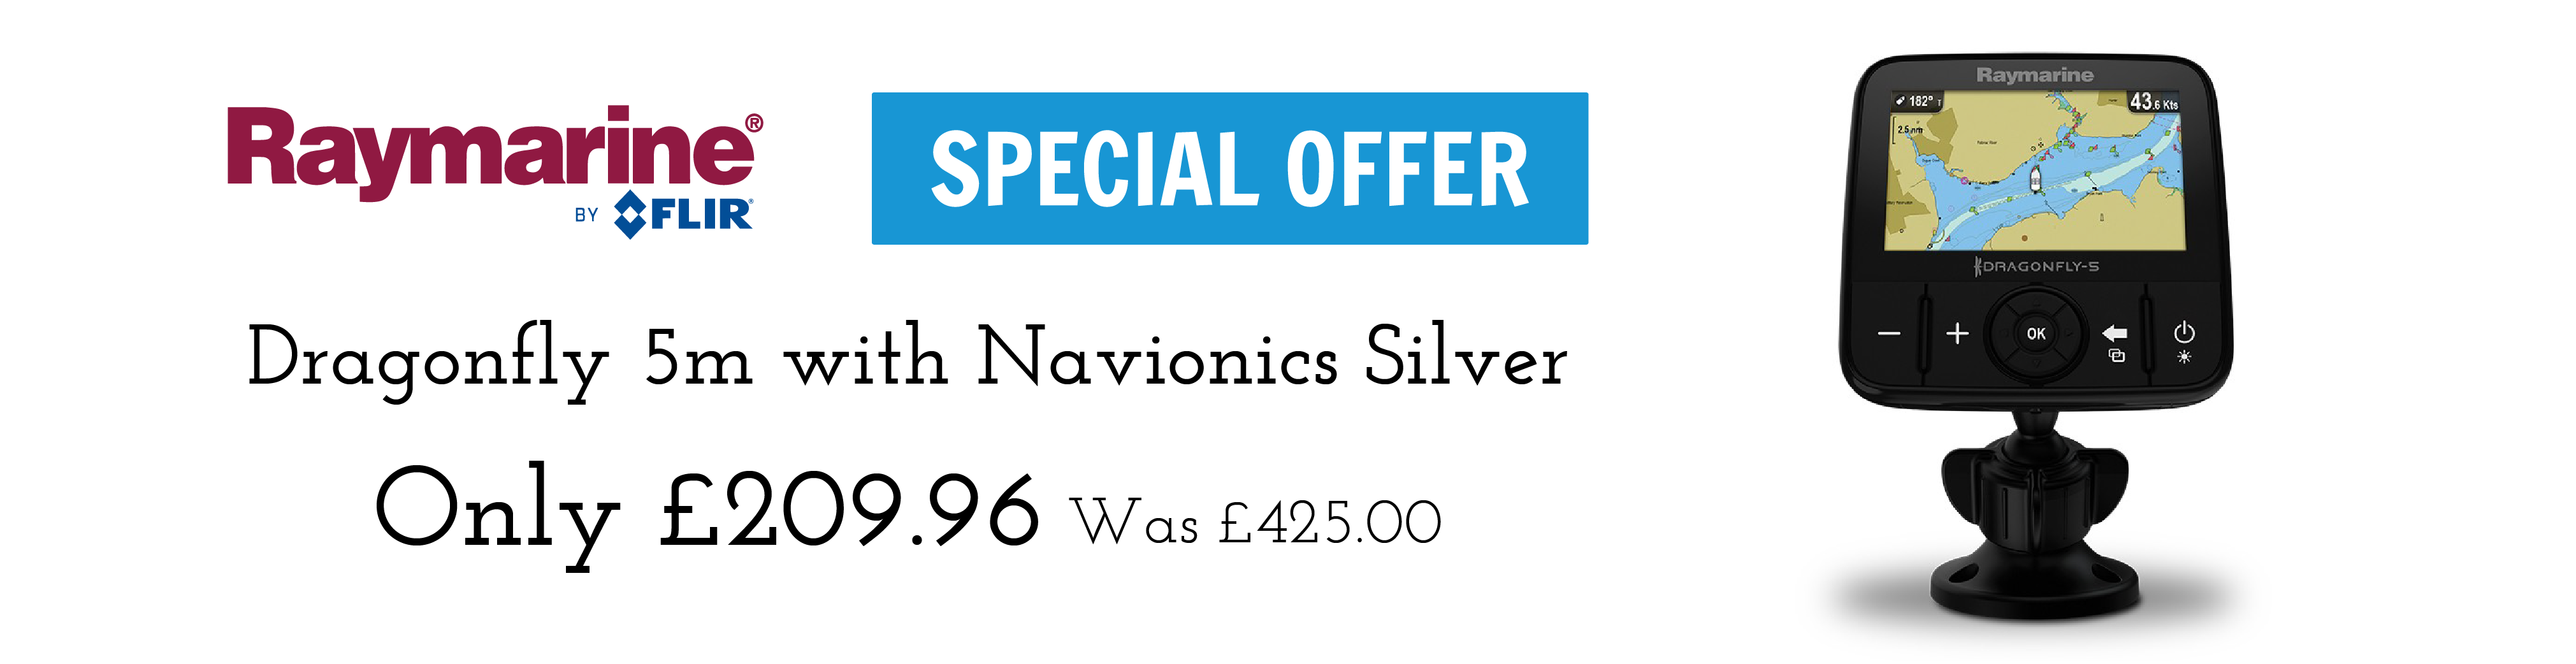 raymarine dragonfly 5m with navionics silver special offer banner